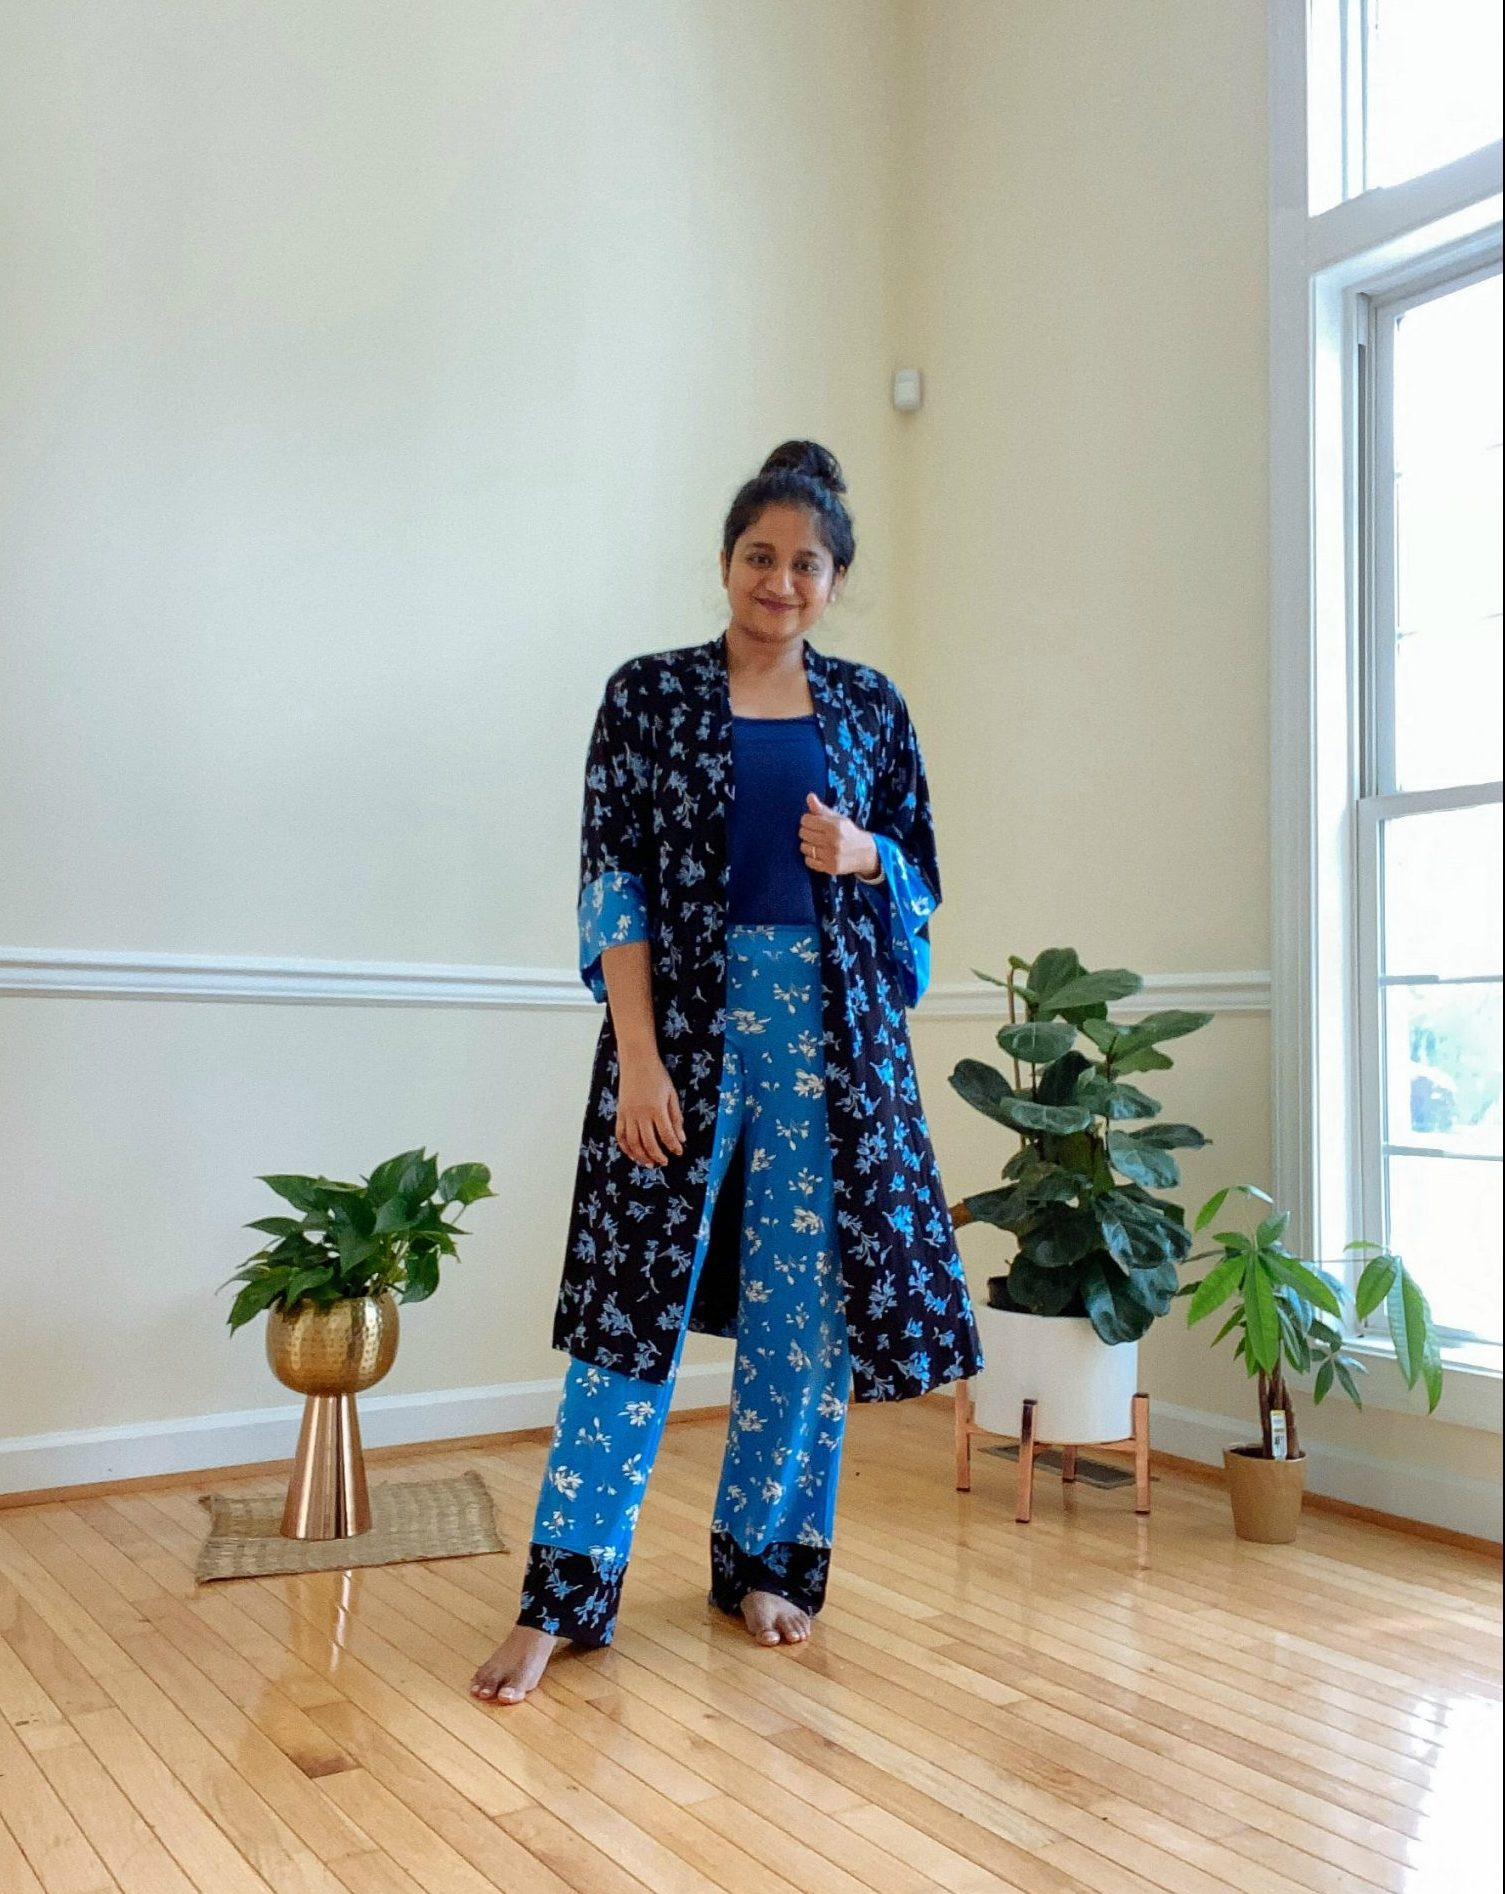 Wearing Soma intimates Cool floral wrap, floral pajama pants,Pajama Swing Cami 1 | Casual Outfits by popular Maryland lifestyle blog, Dreaming Loud: image of a woman wearing a Soma intimates Cool floral wrap, floral pajama pants, and Pajama Swing Cami.